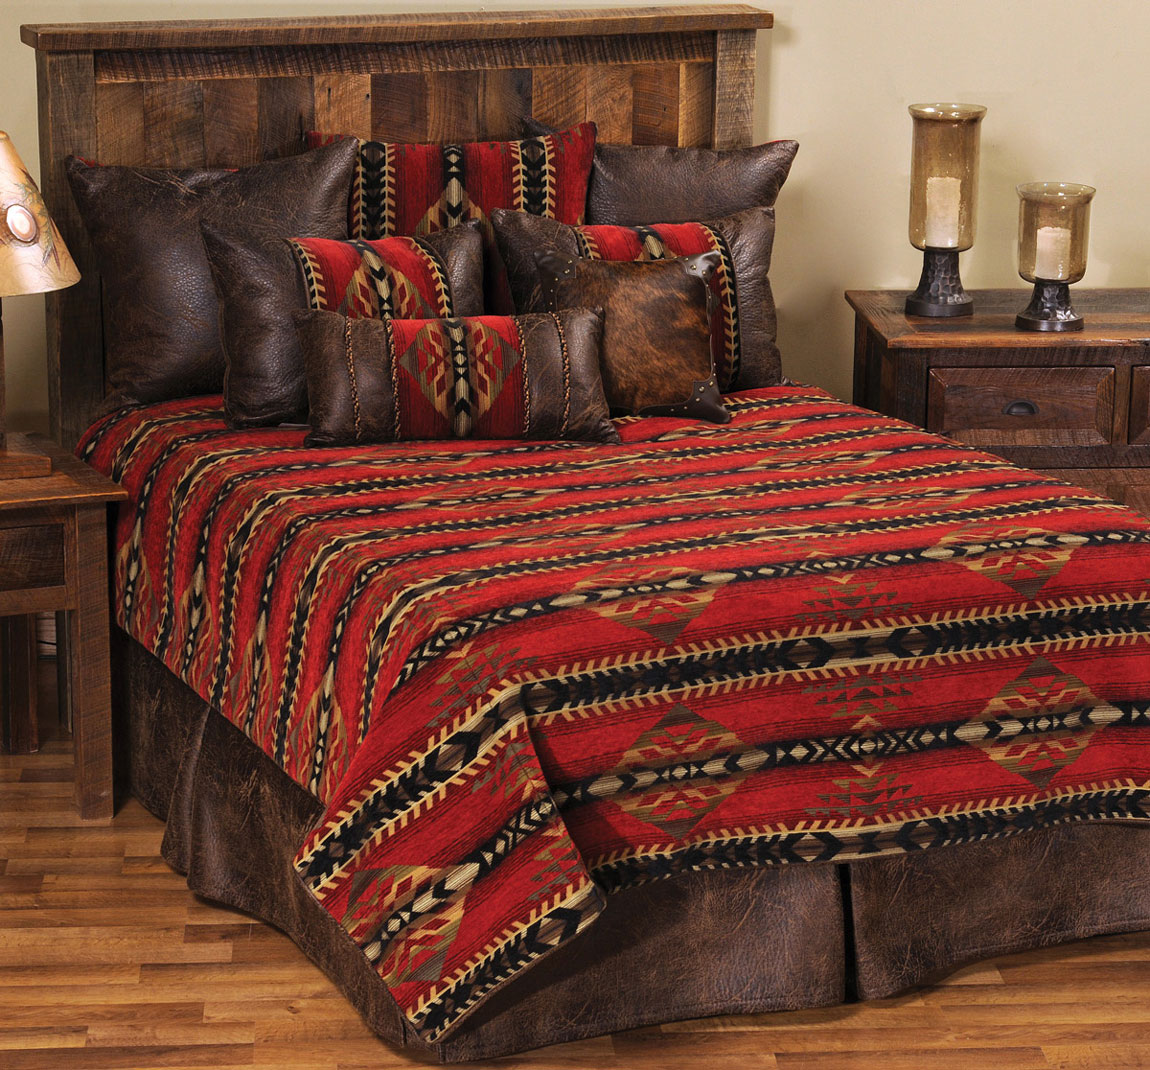 Gallop Value Bed Set - Cal King